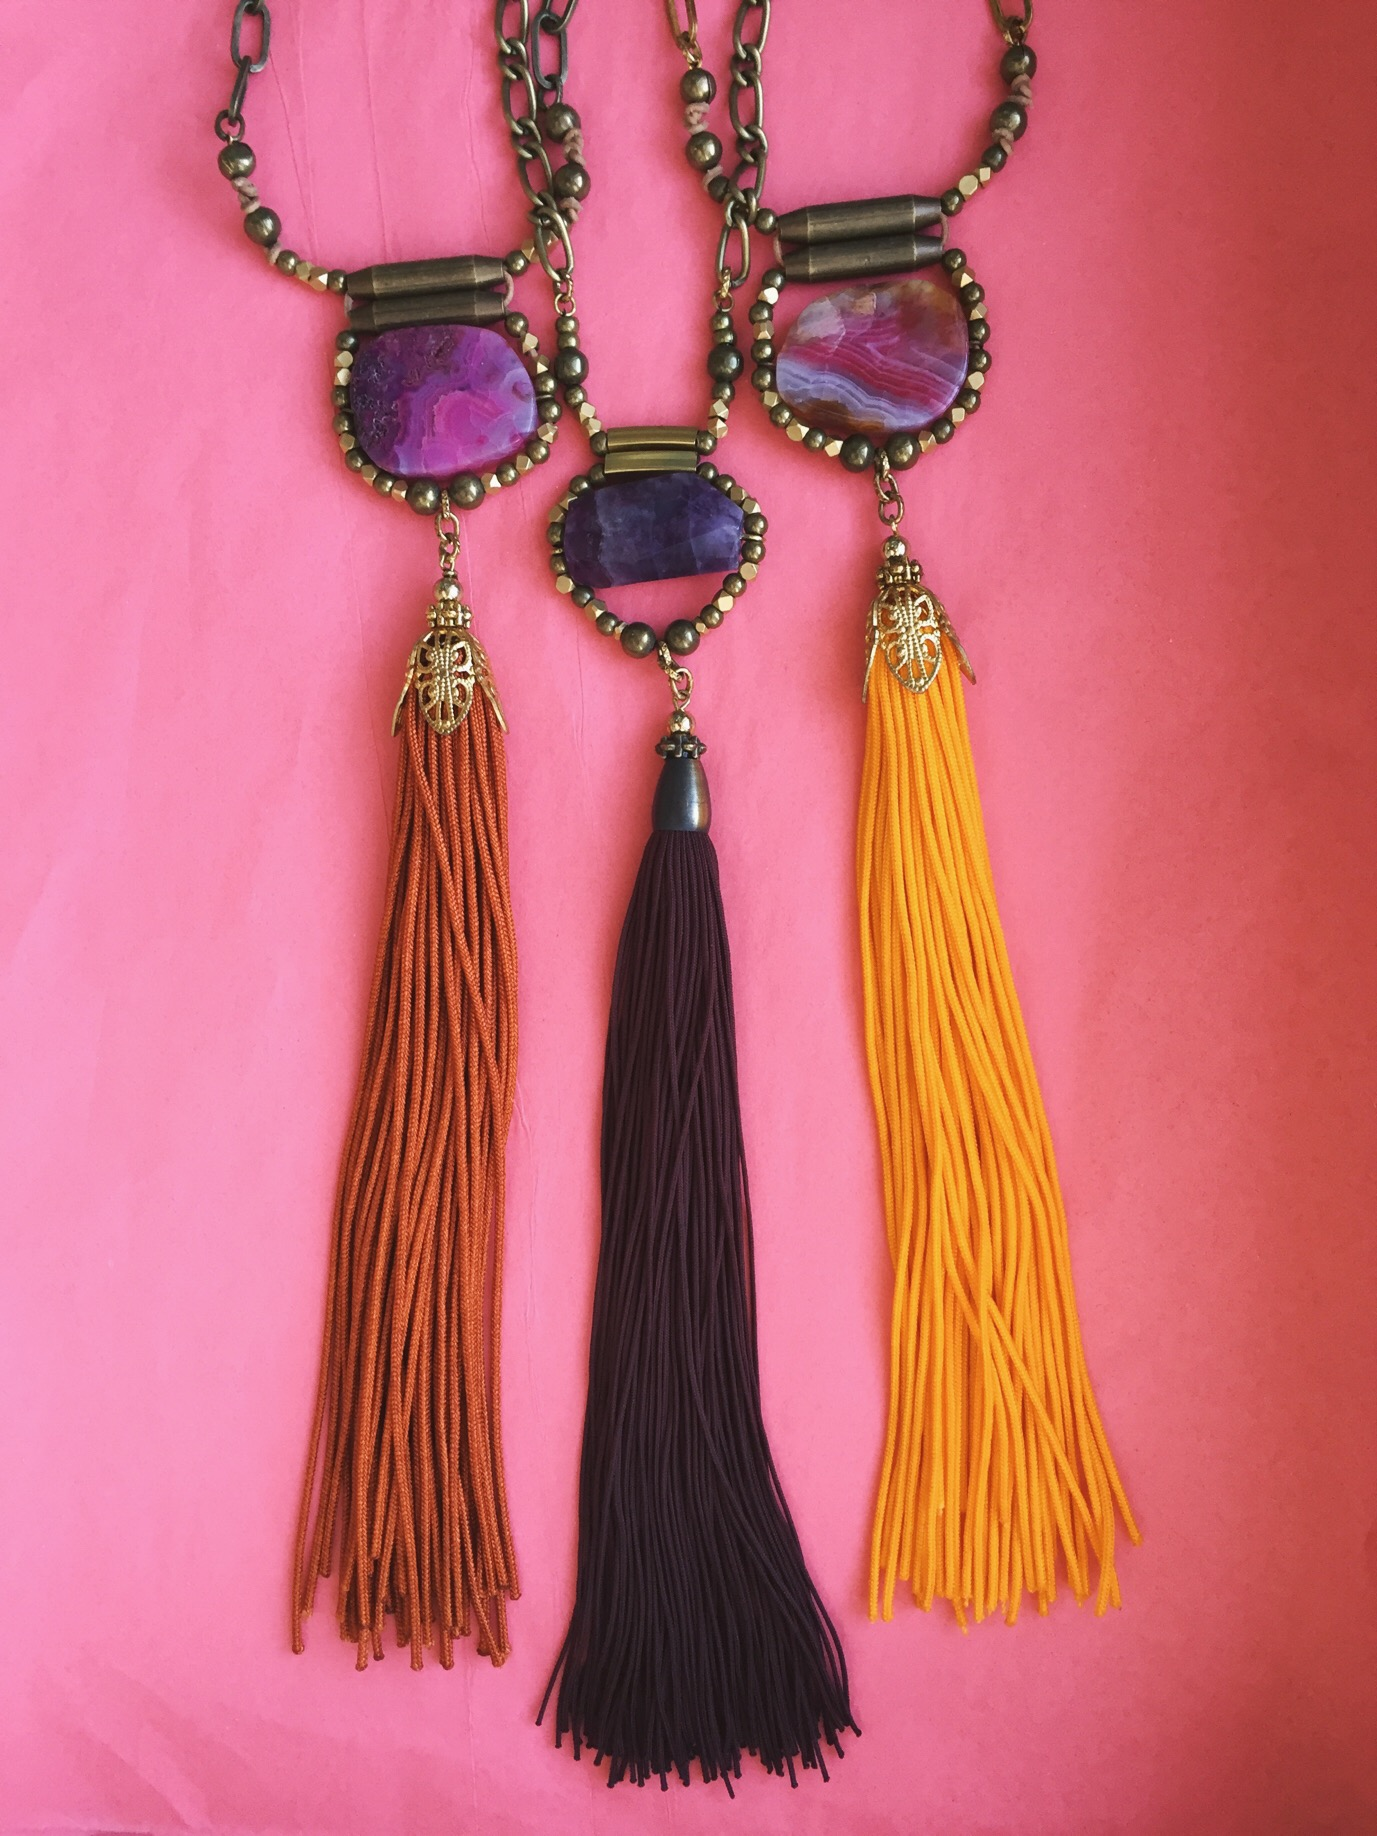 These stones really pair well with our tassels, don't you think?